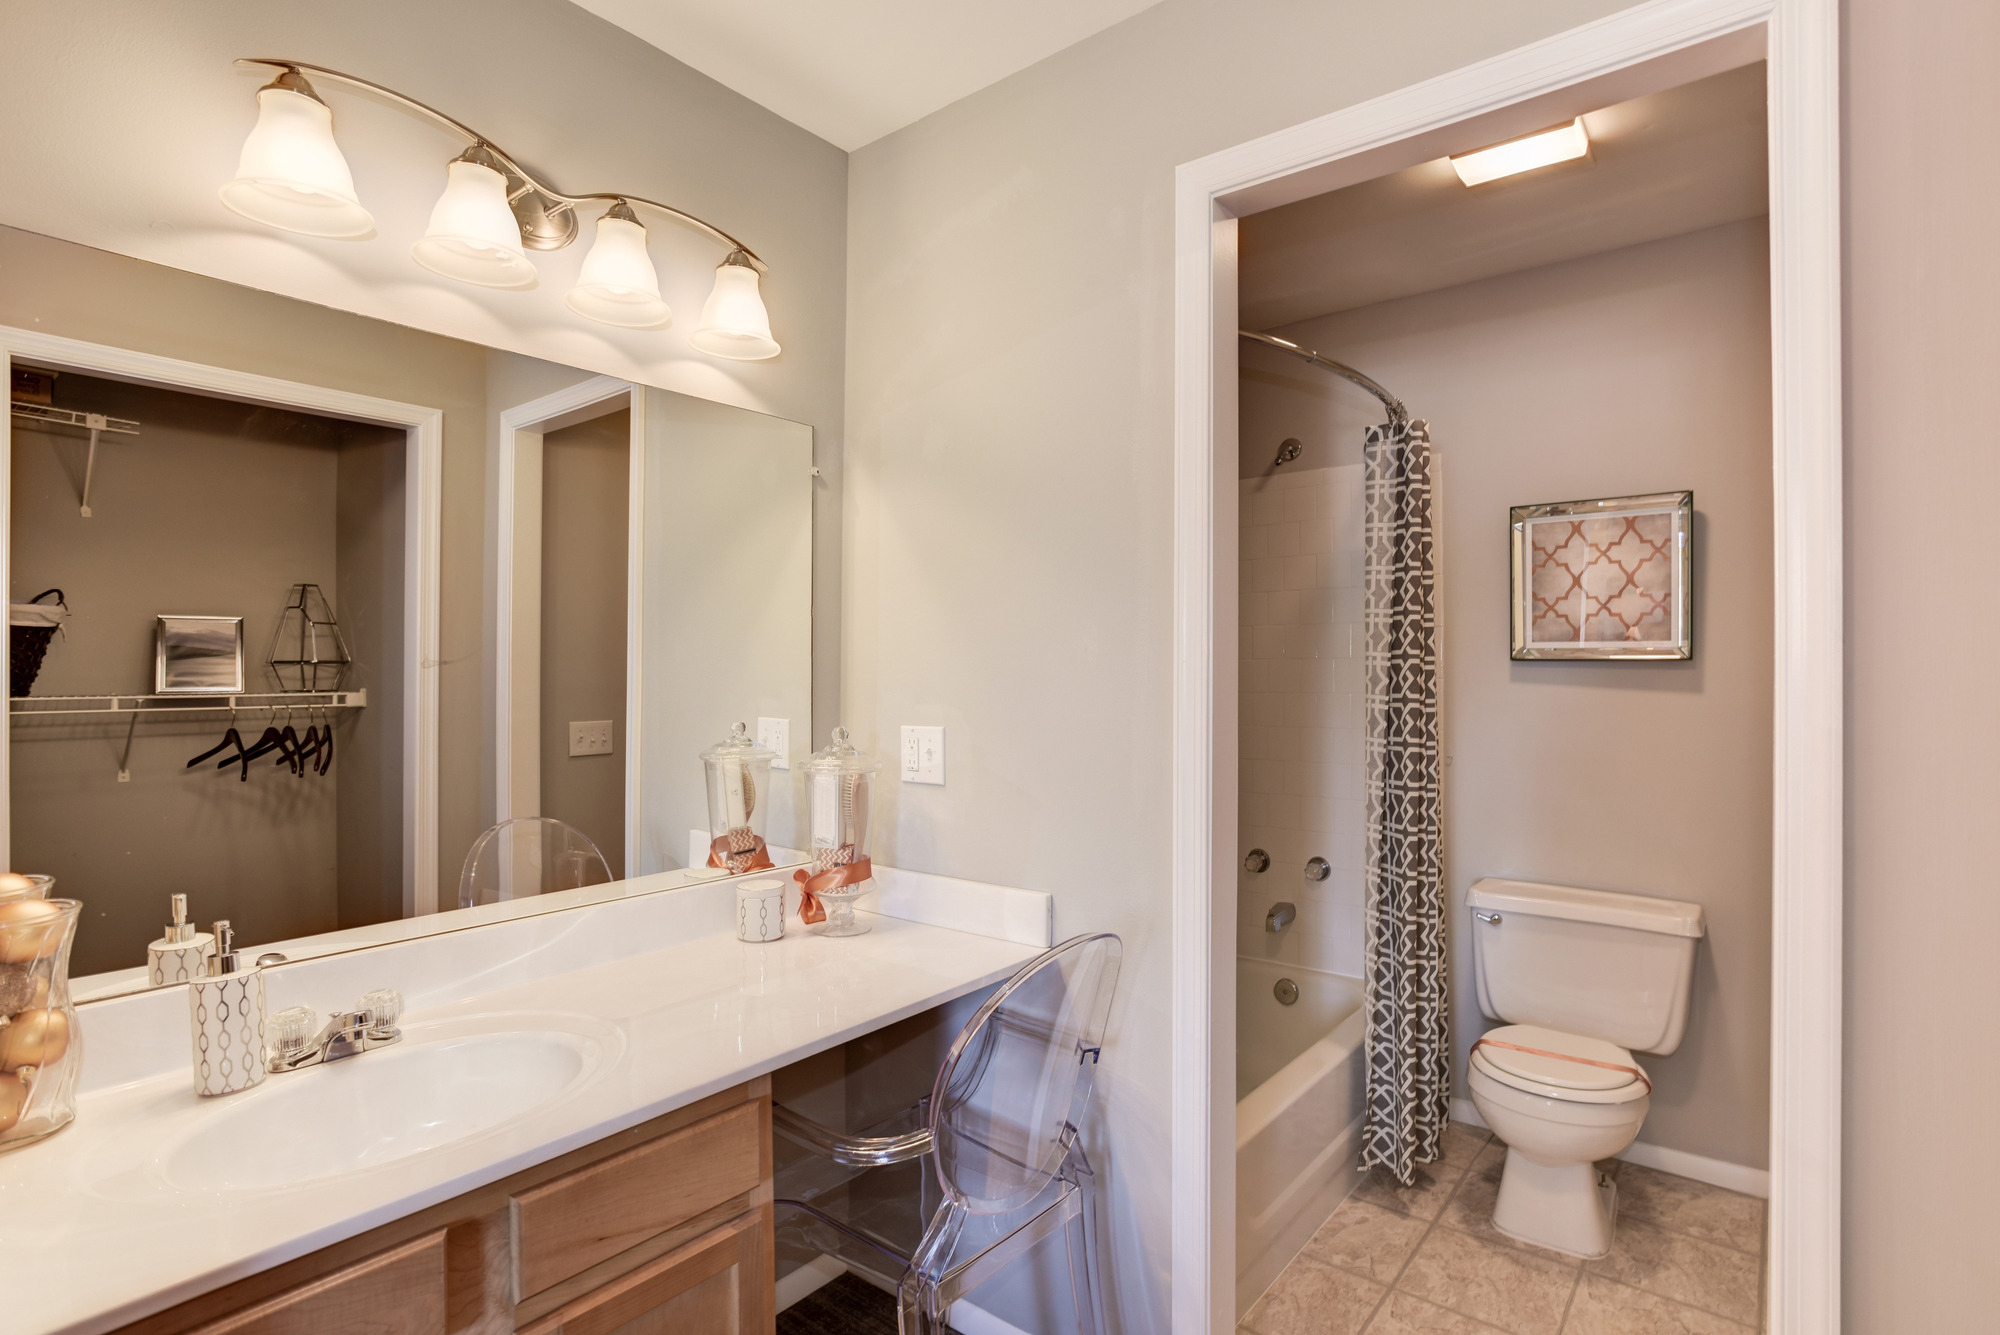 Fox Run Apartments in Edgewood, MD 21040: Master Bedroom Dressing Area and Full Bathroom